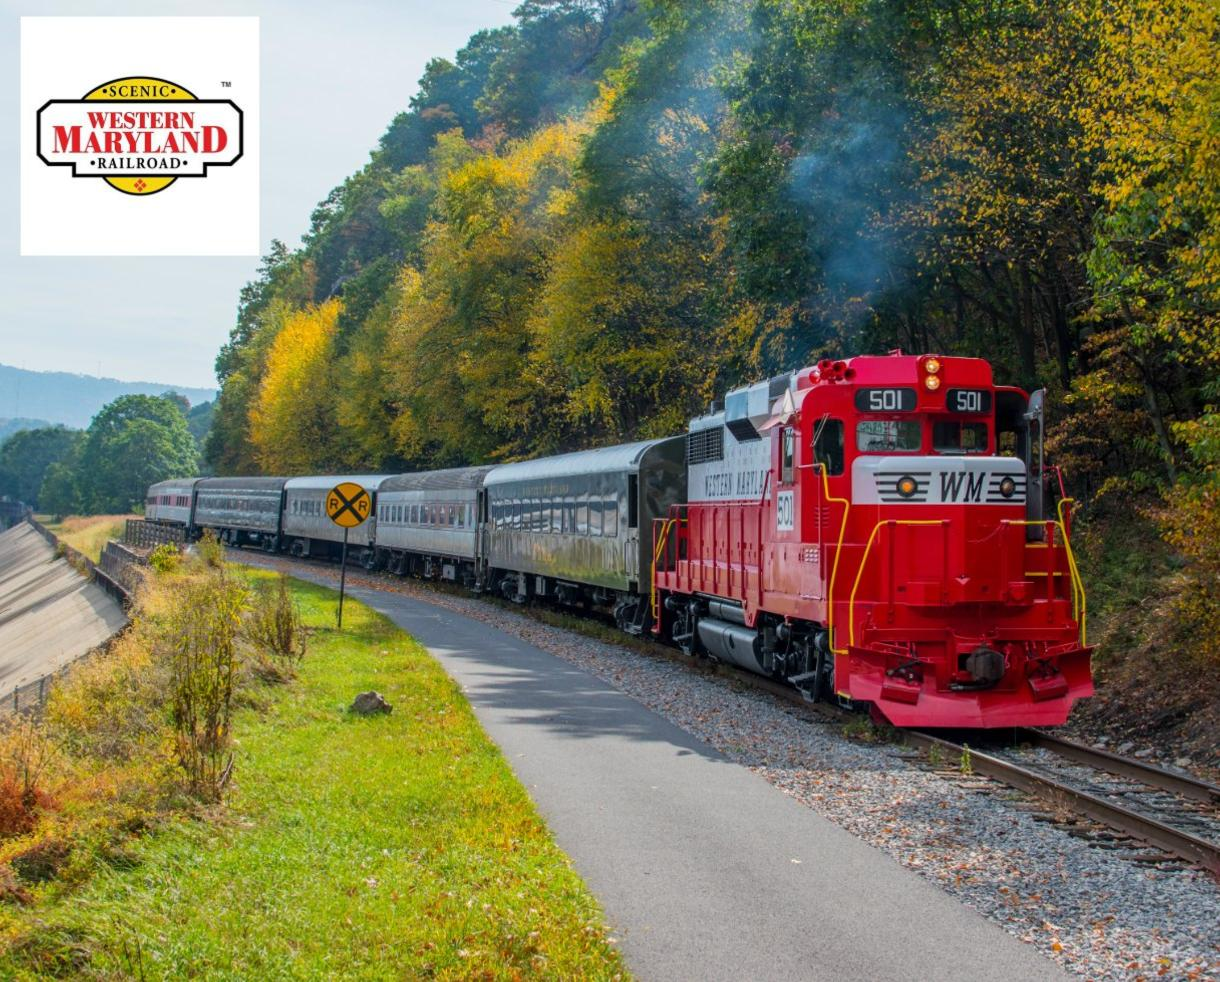 Western Maryland Scenic Railroad: One Child or Adult Ticket